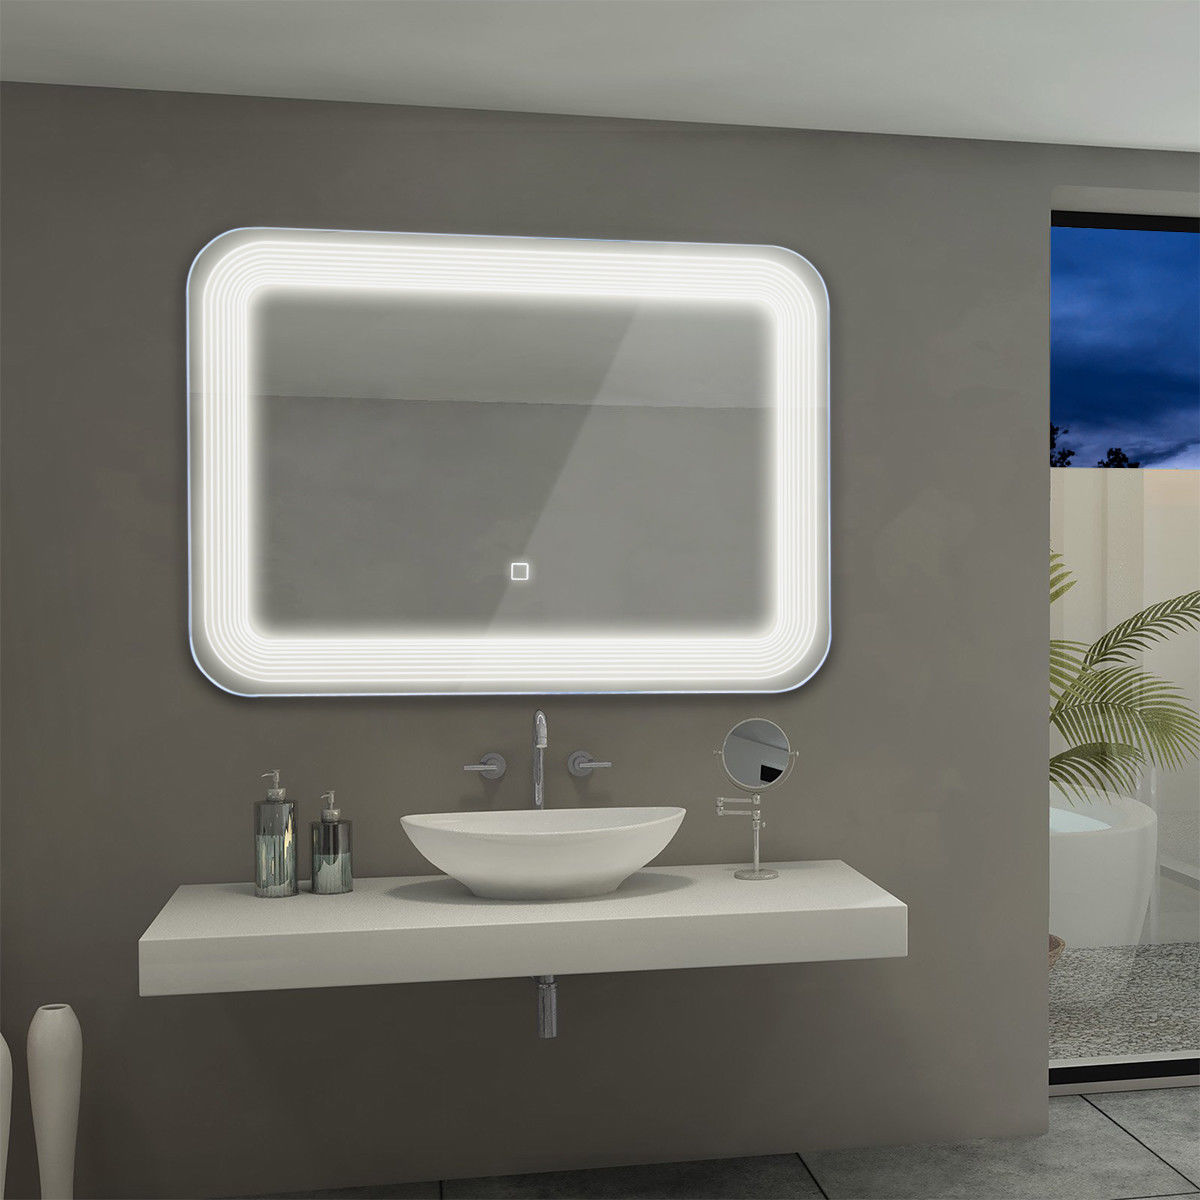 Costway Led Wall Mount Mirror Bathroom Vanity Makeup Illuminated Mirror W Touch Button Walmart